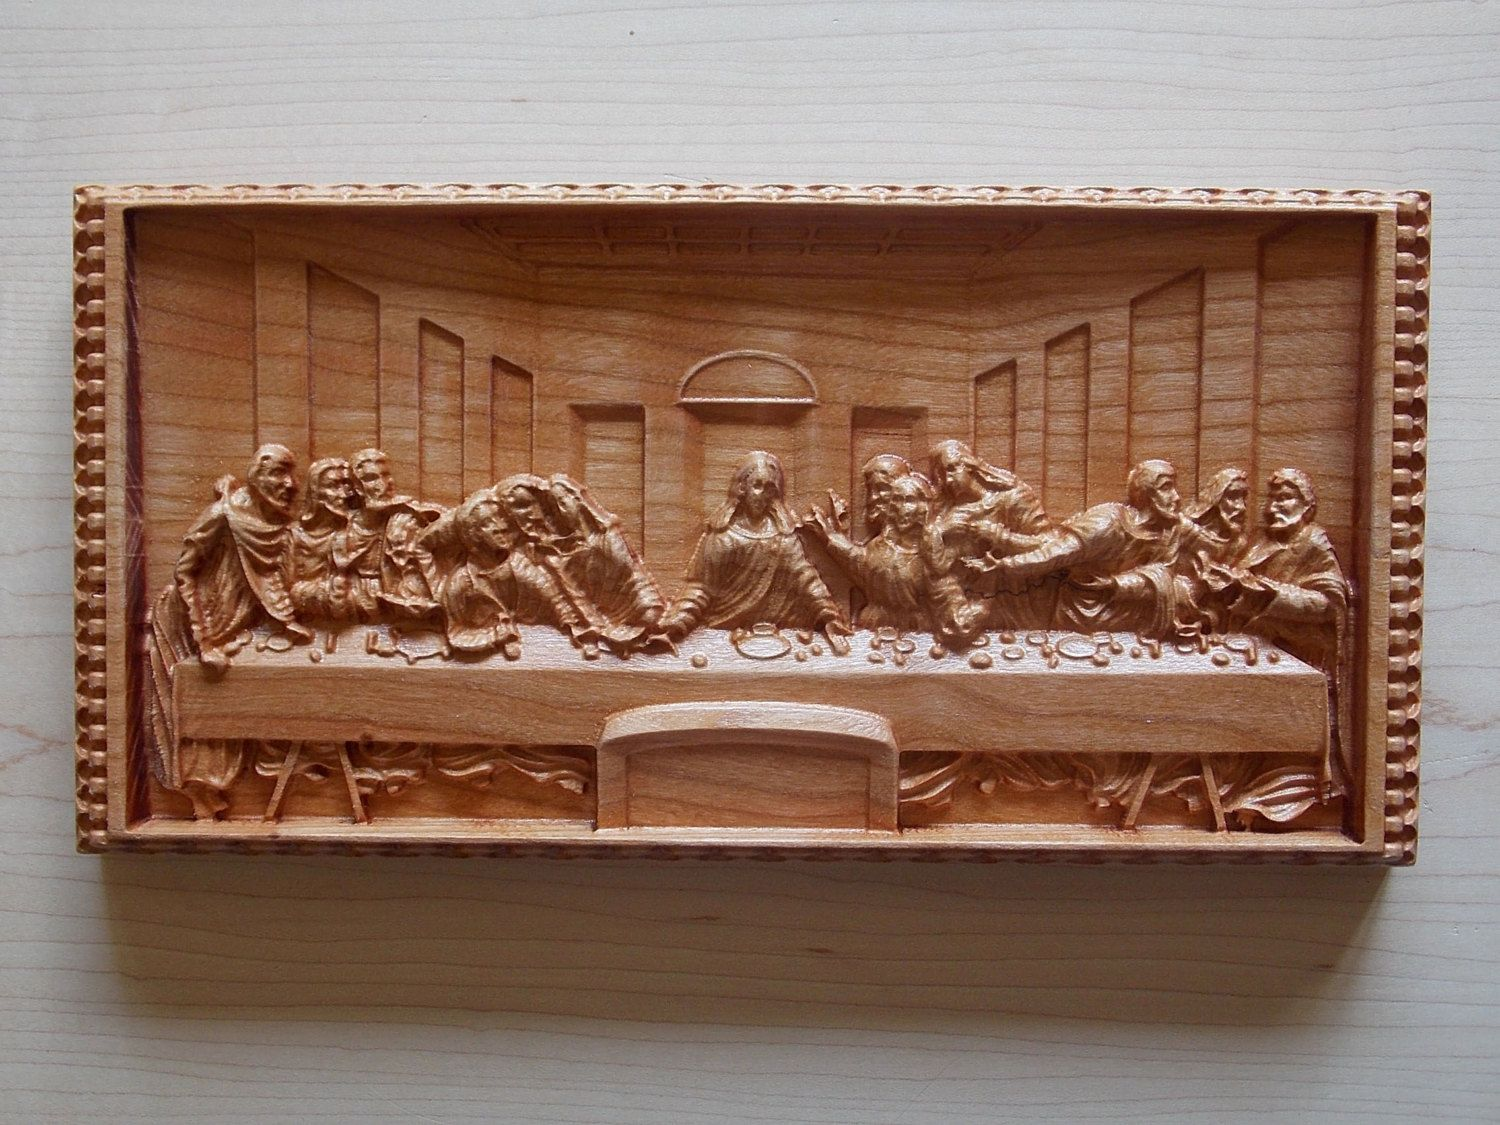 I have a religious piece that is the last supper carved on what